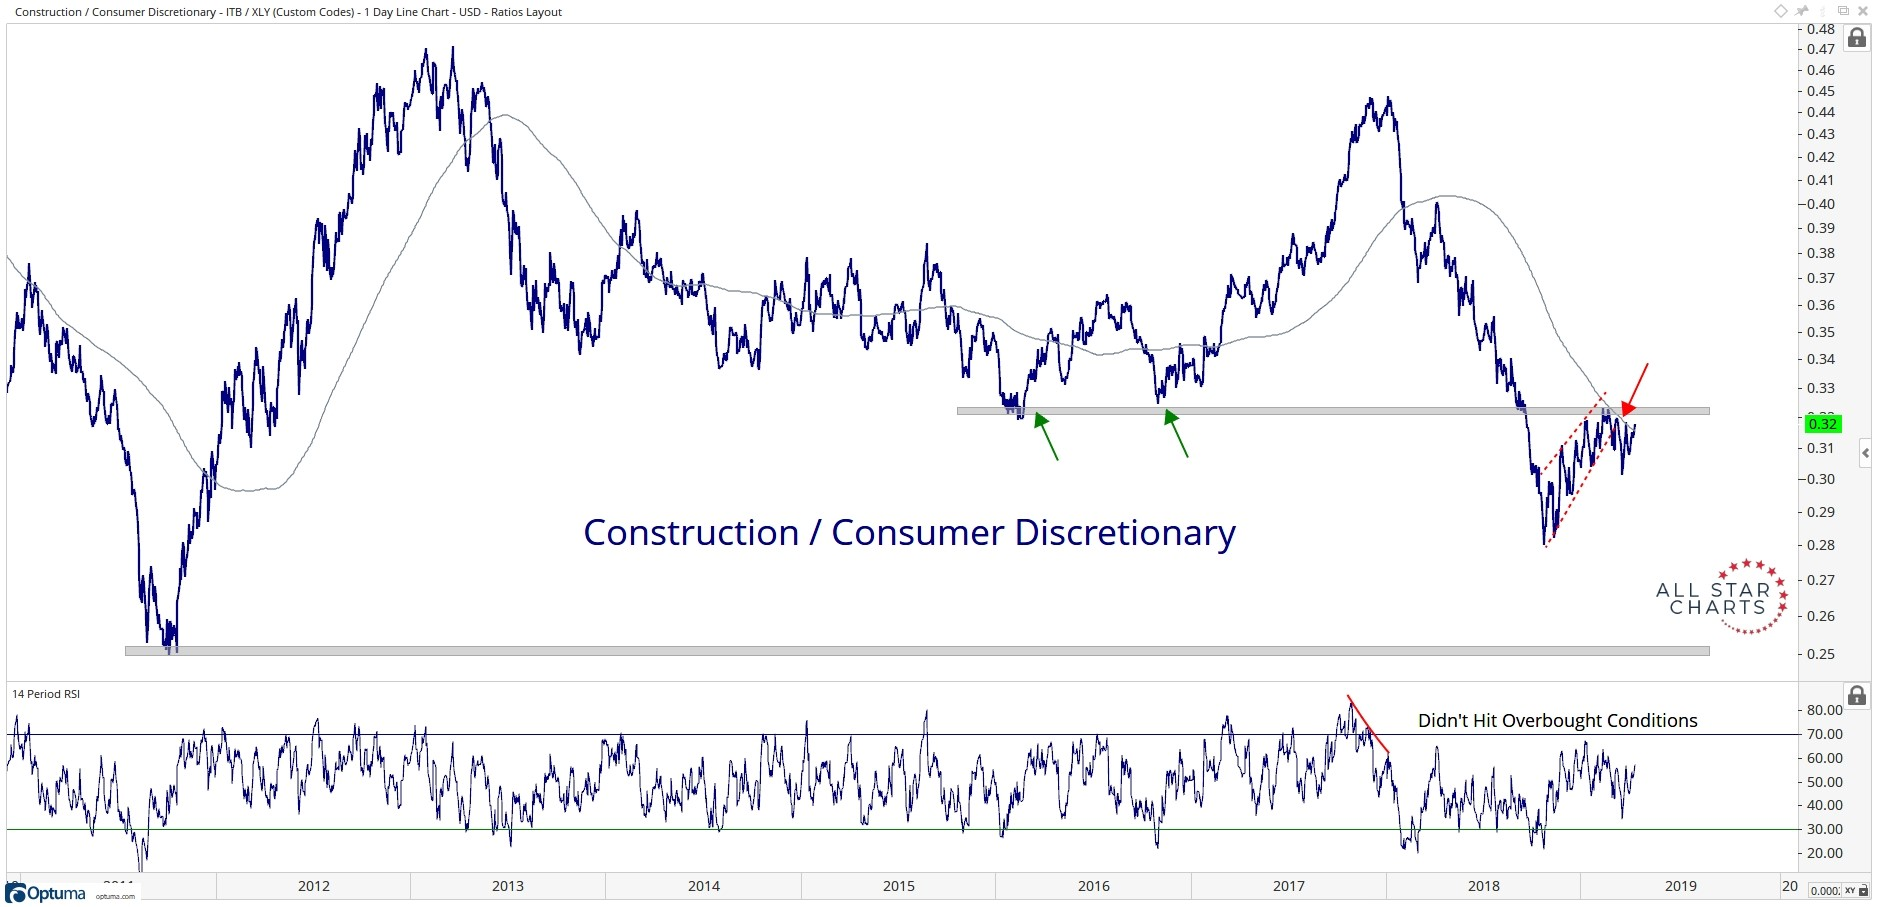 Long-term history of construction and homebuilding stocks relative to the broader Consumer Discretionary sector